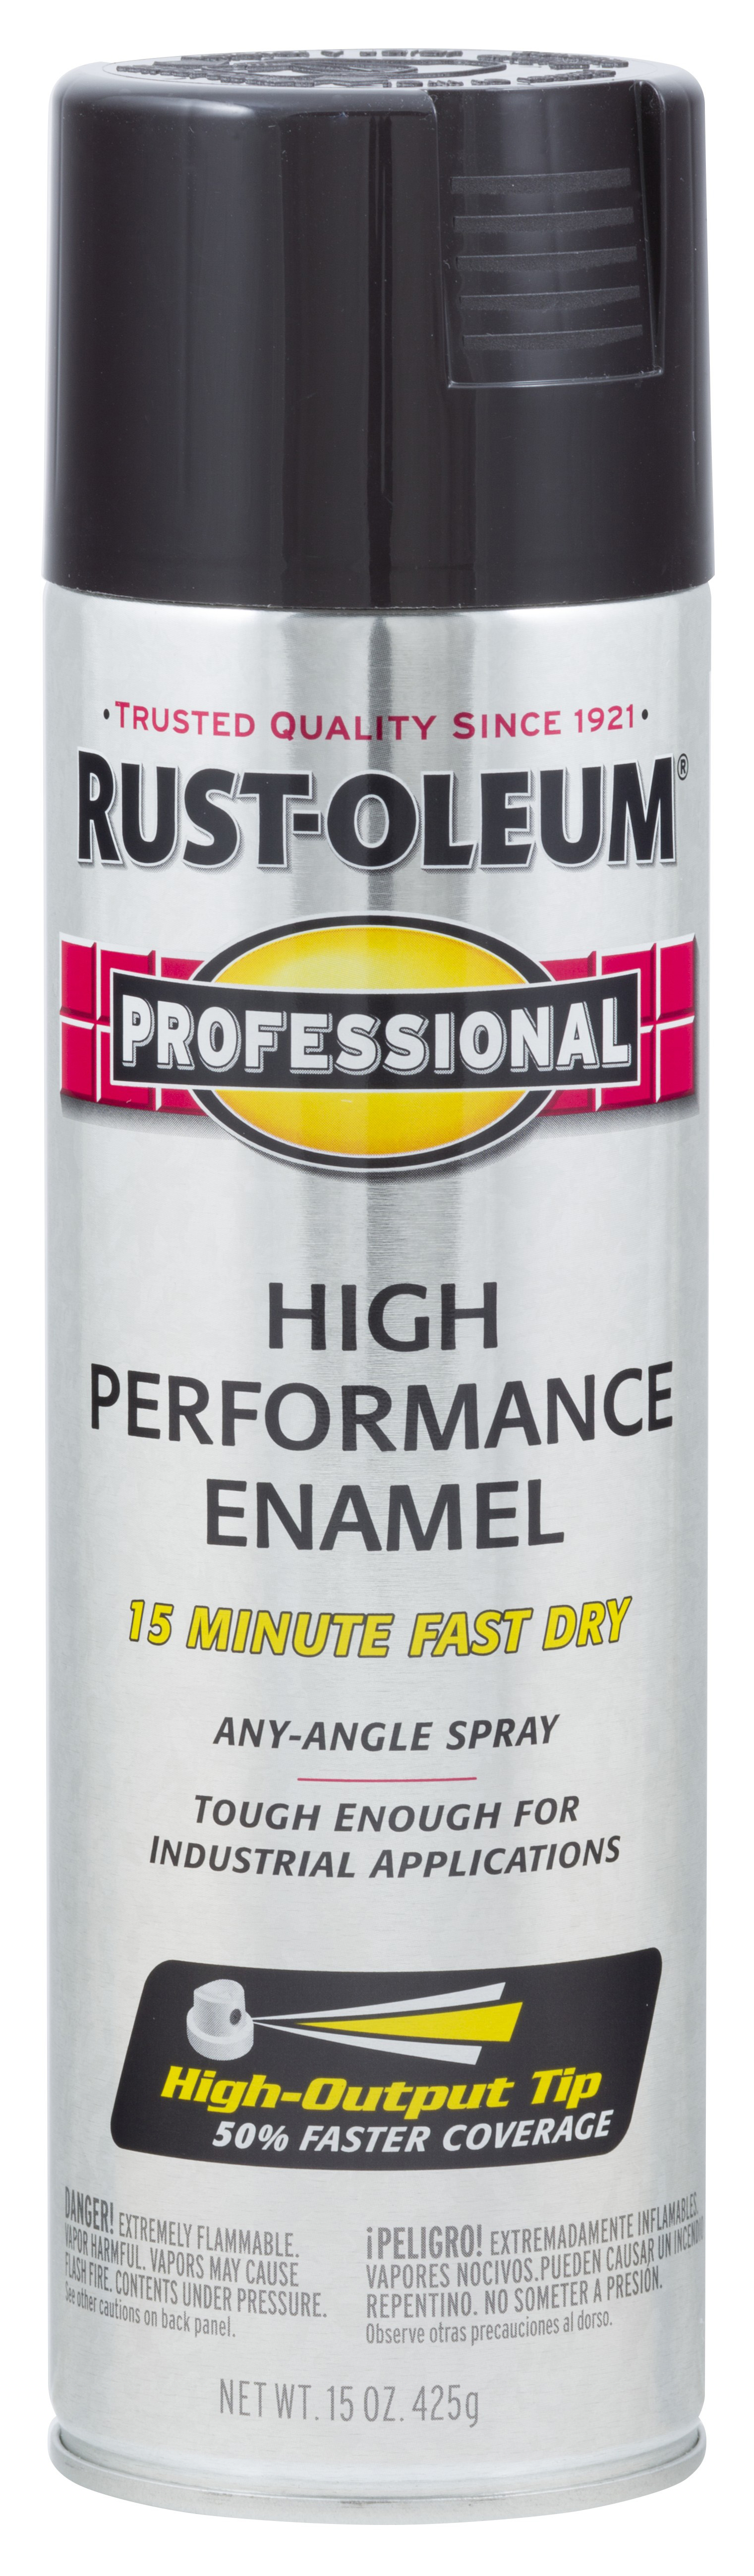 Rust-Oleum Professional Enamel Spray Paint- Semi-Gloss Black 239107